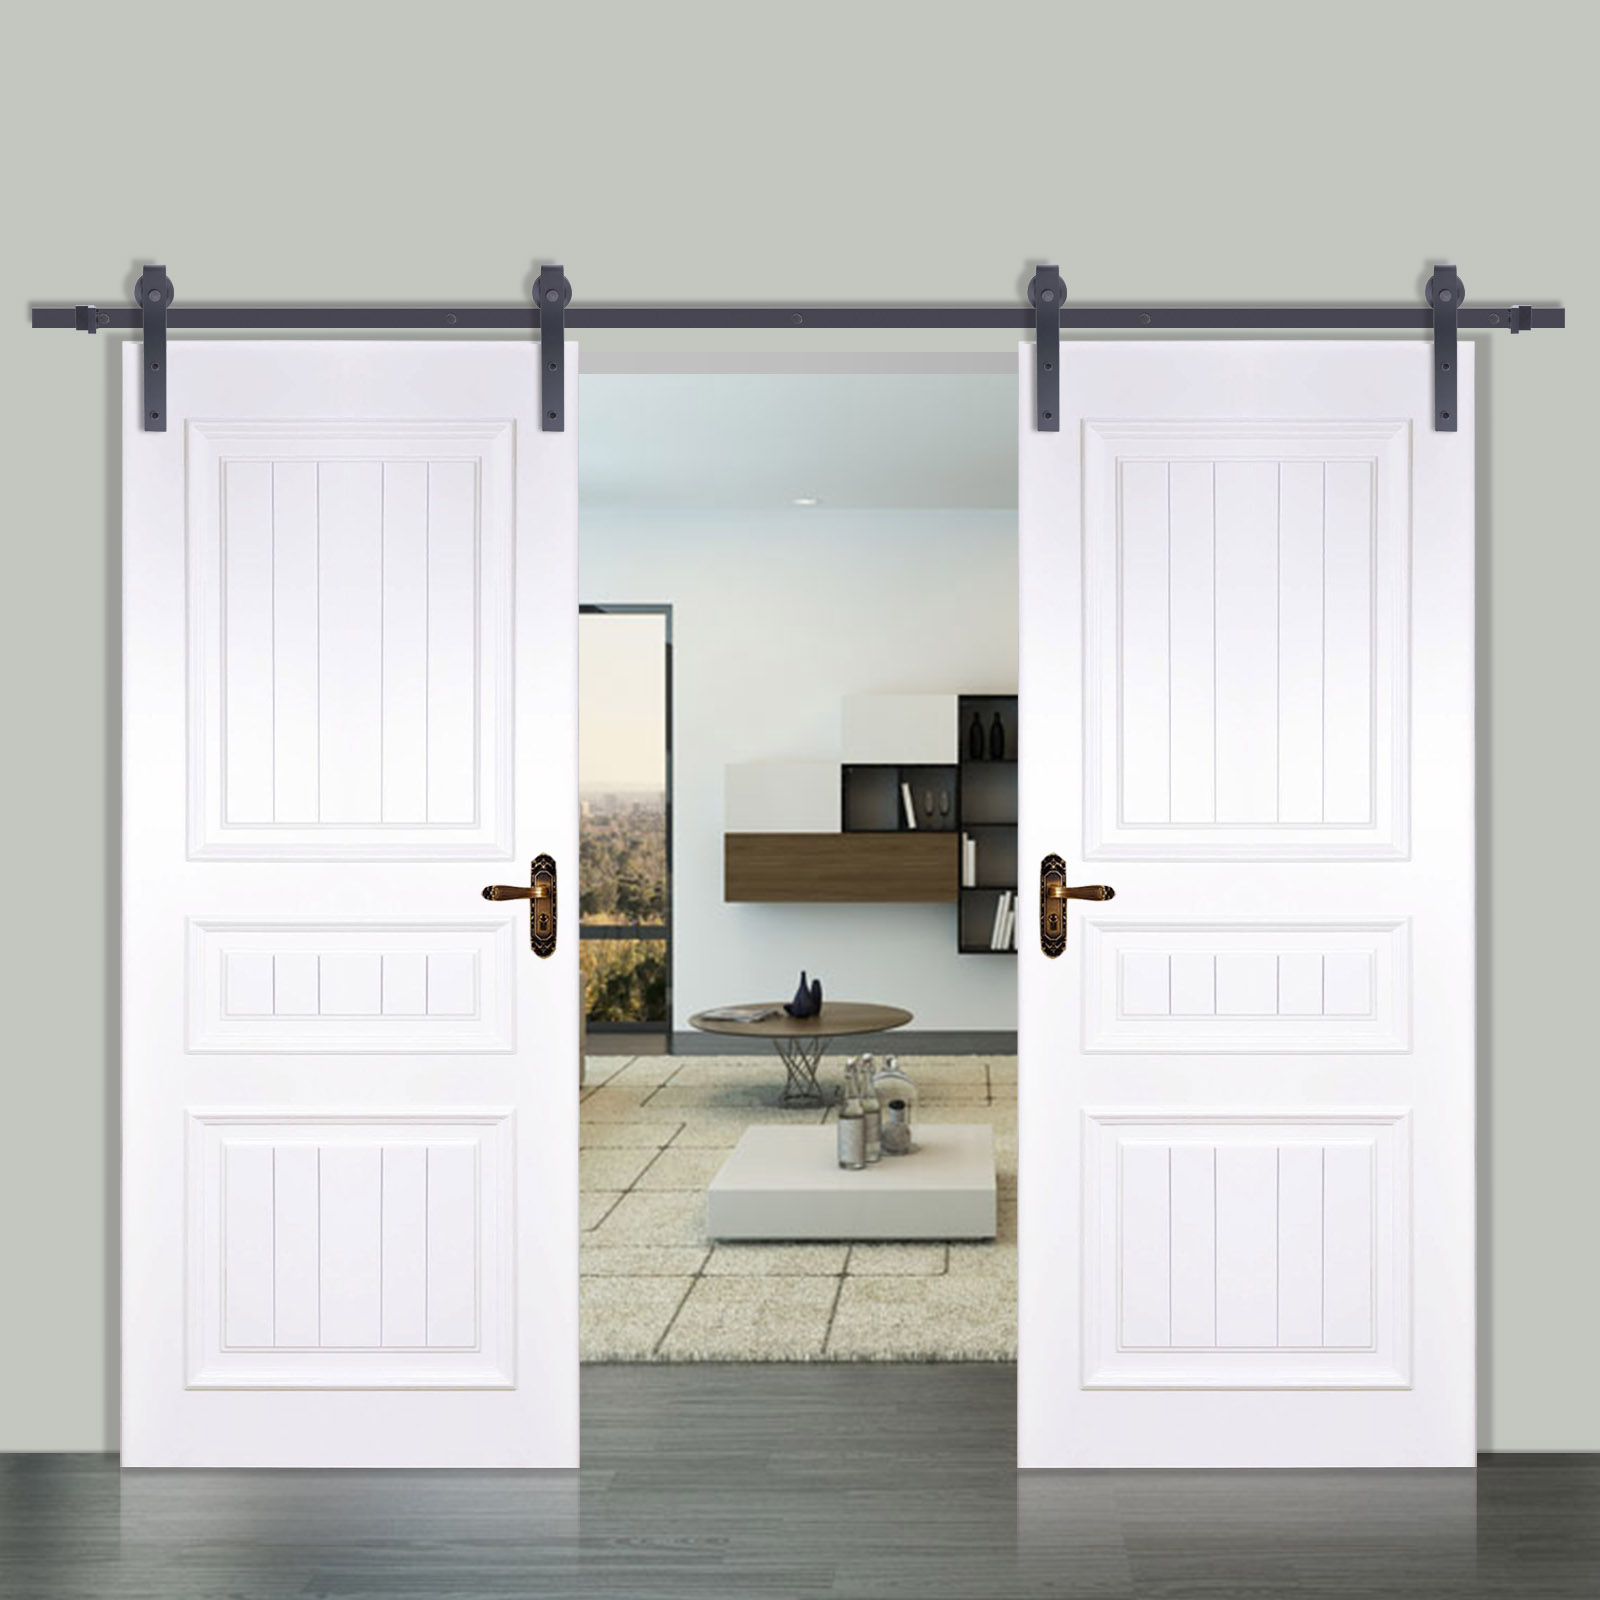 6 66 10 12ft Rustic Black Double Sliding Barn Door Hardware